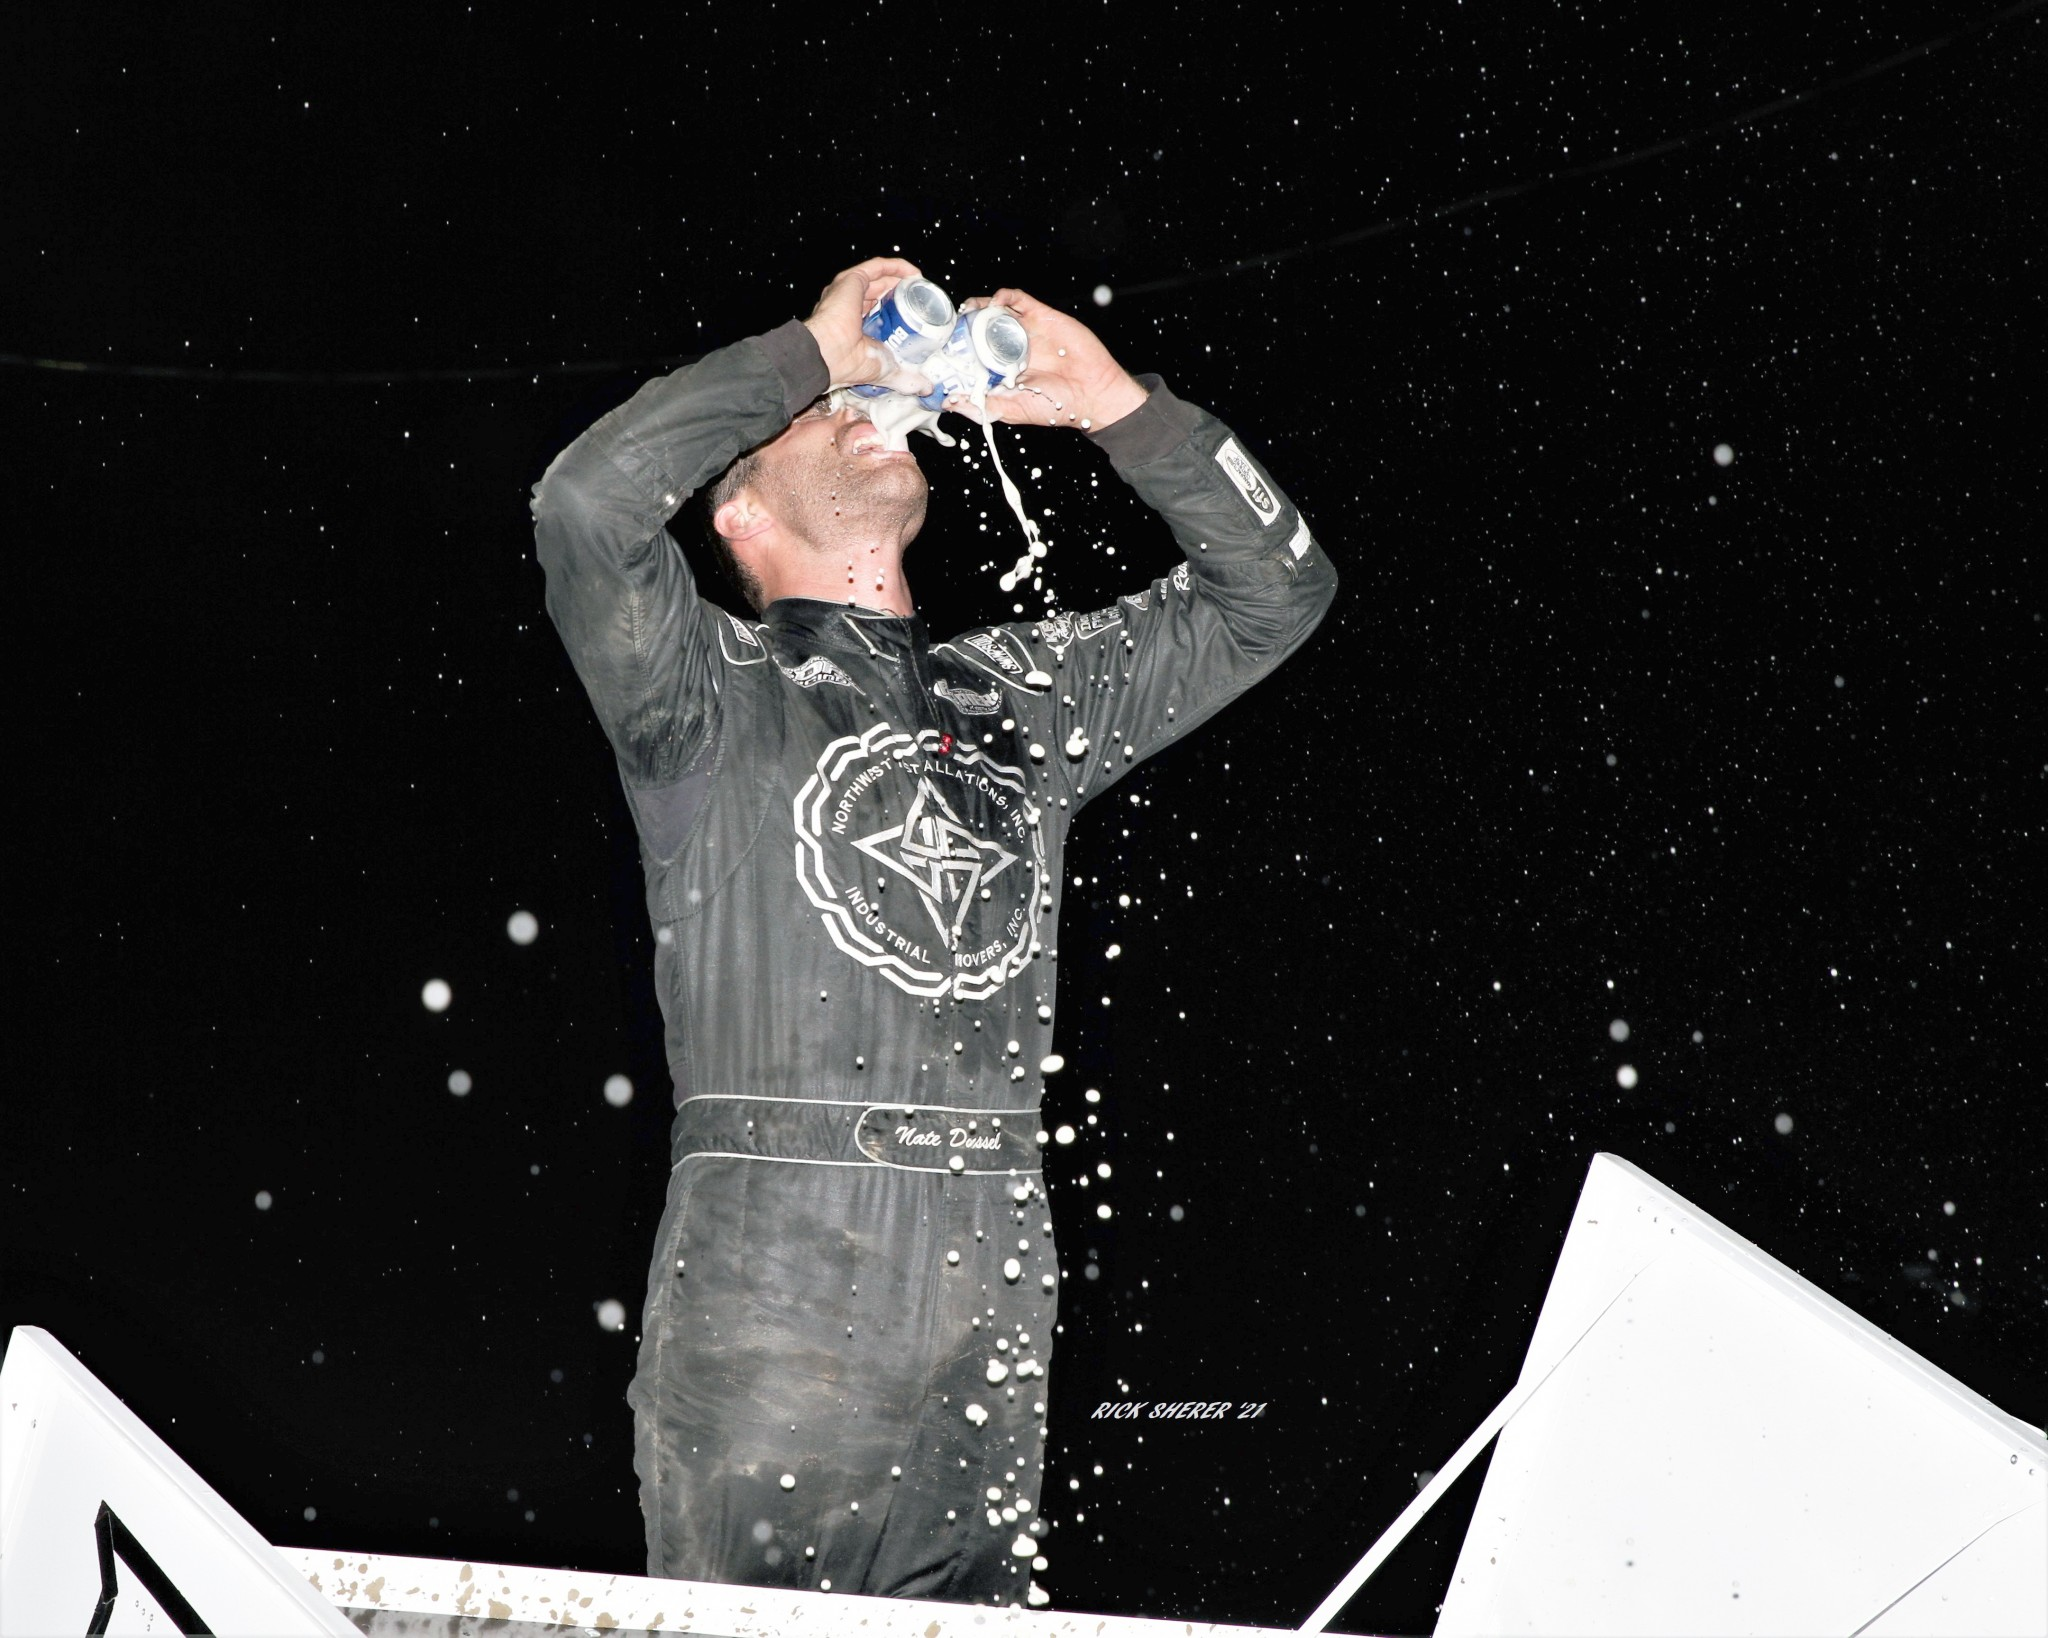 Nate Dussel has one of the most unique and intense victory celebrations around atop his wing with a pair of his favorite beverages. (Photo by Rick Sherer)